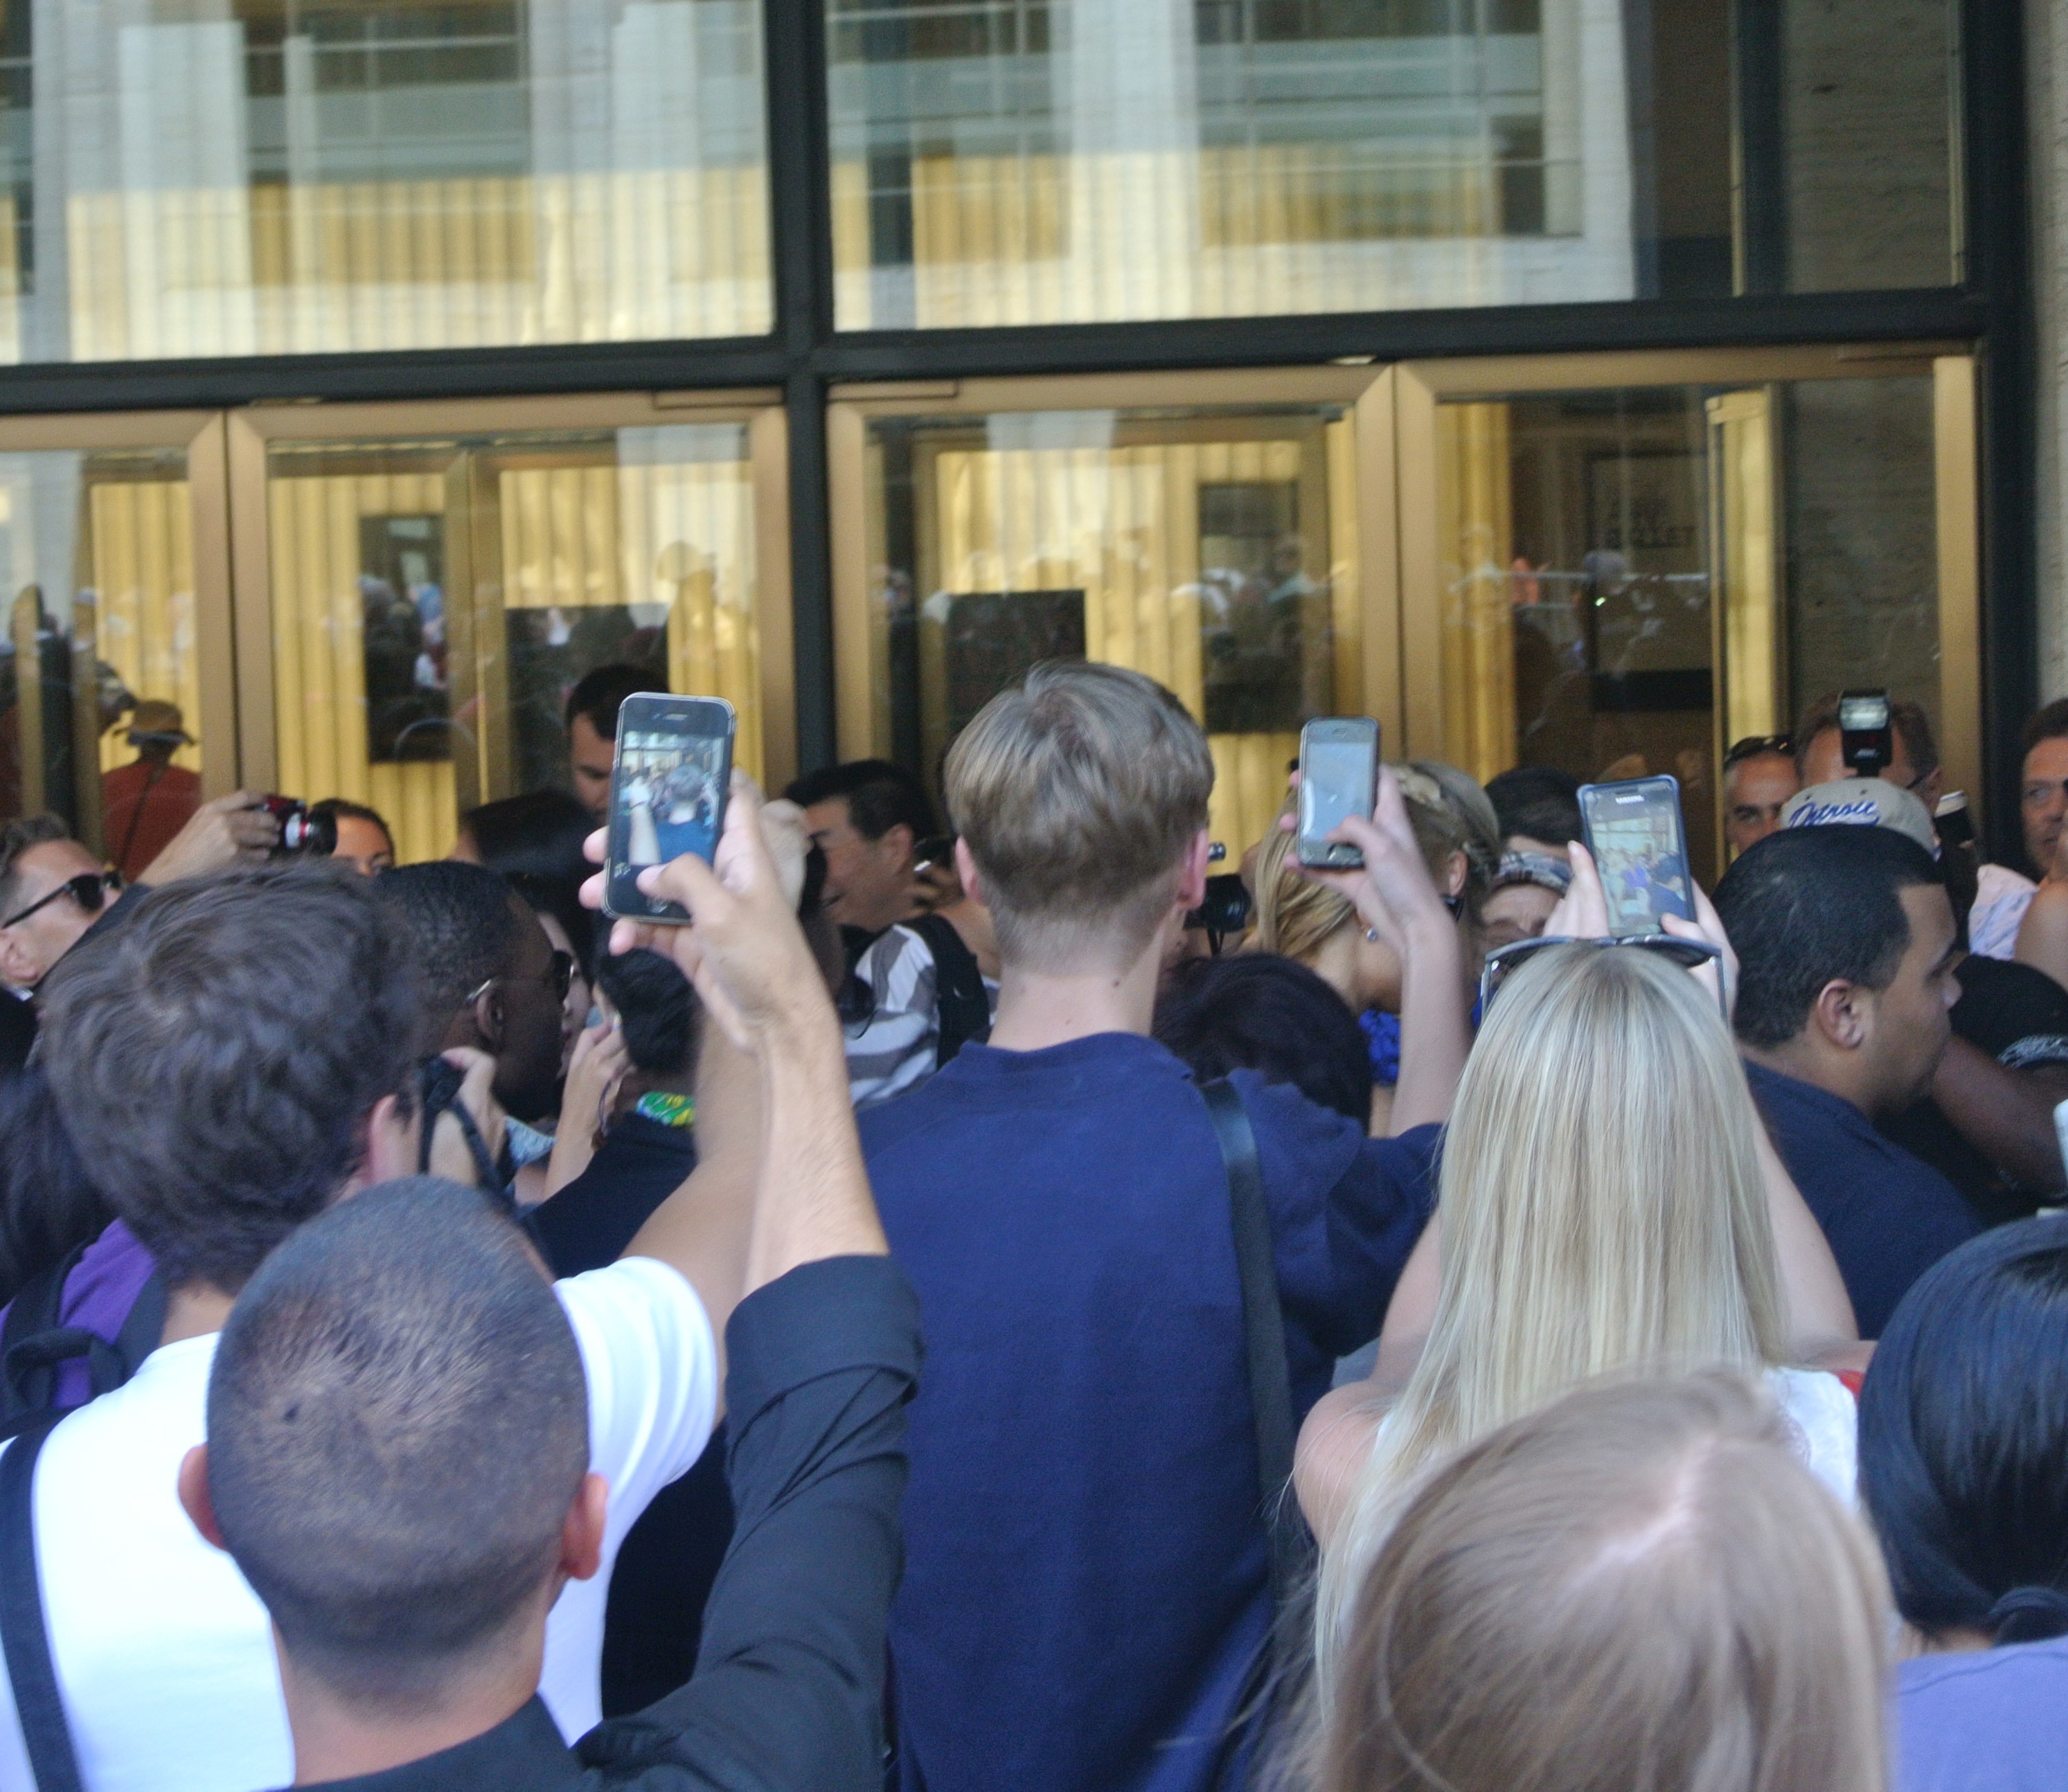 Paris Hilton arriveert in New York